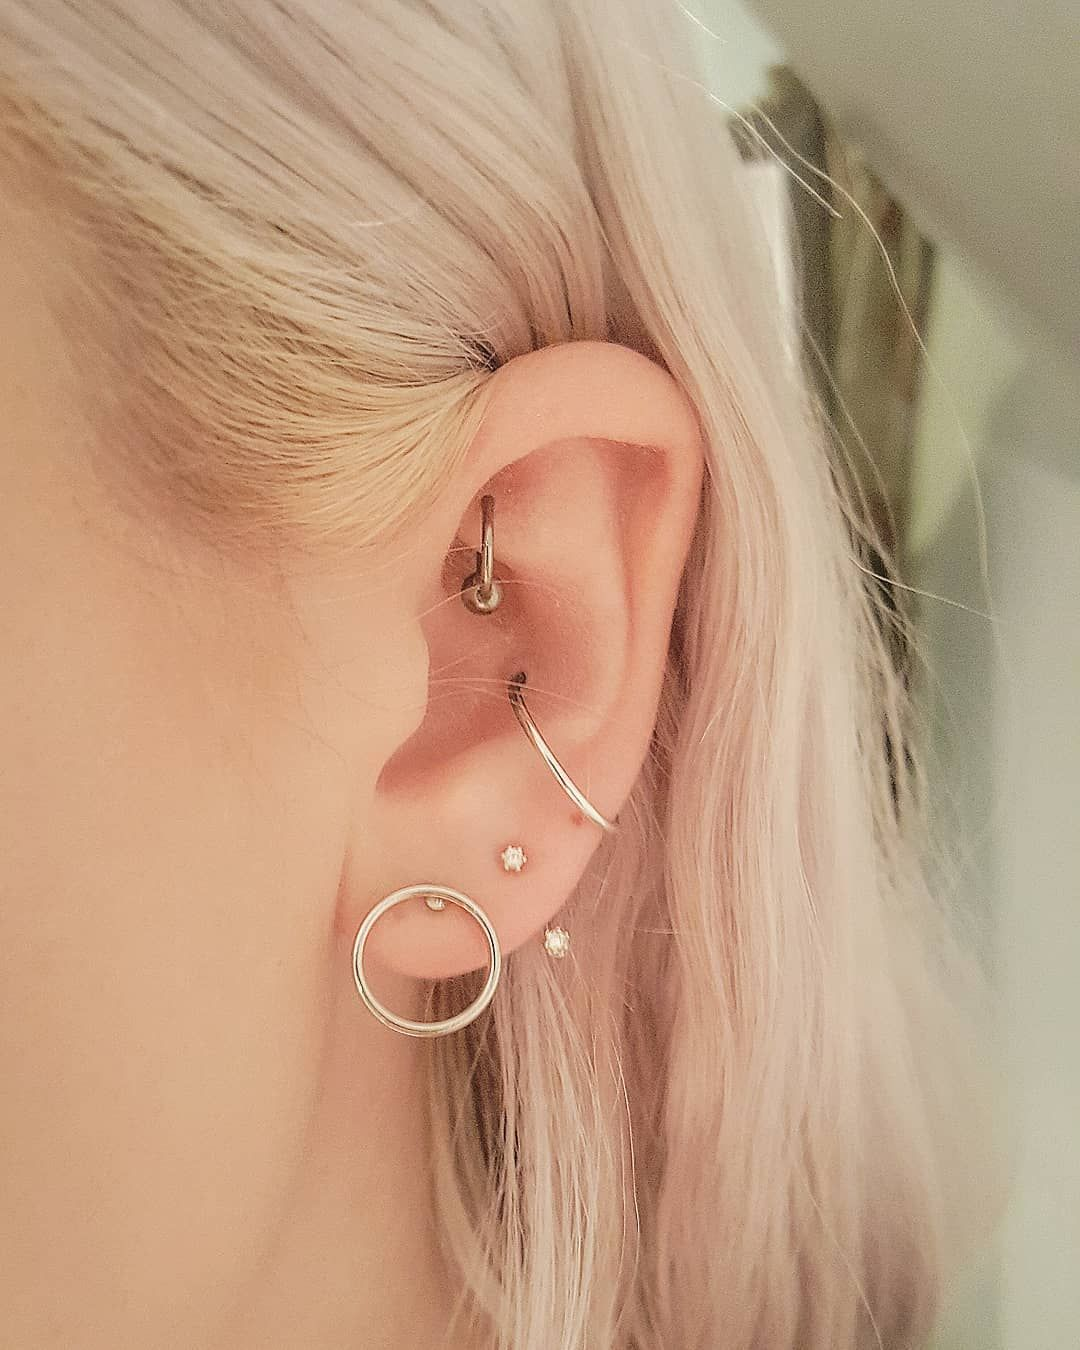 10 Reasons Why Conch Ear Piercings Are All The Rage Rn Earings